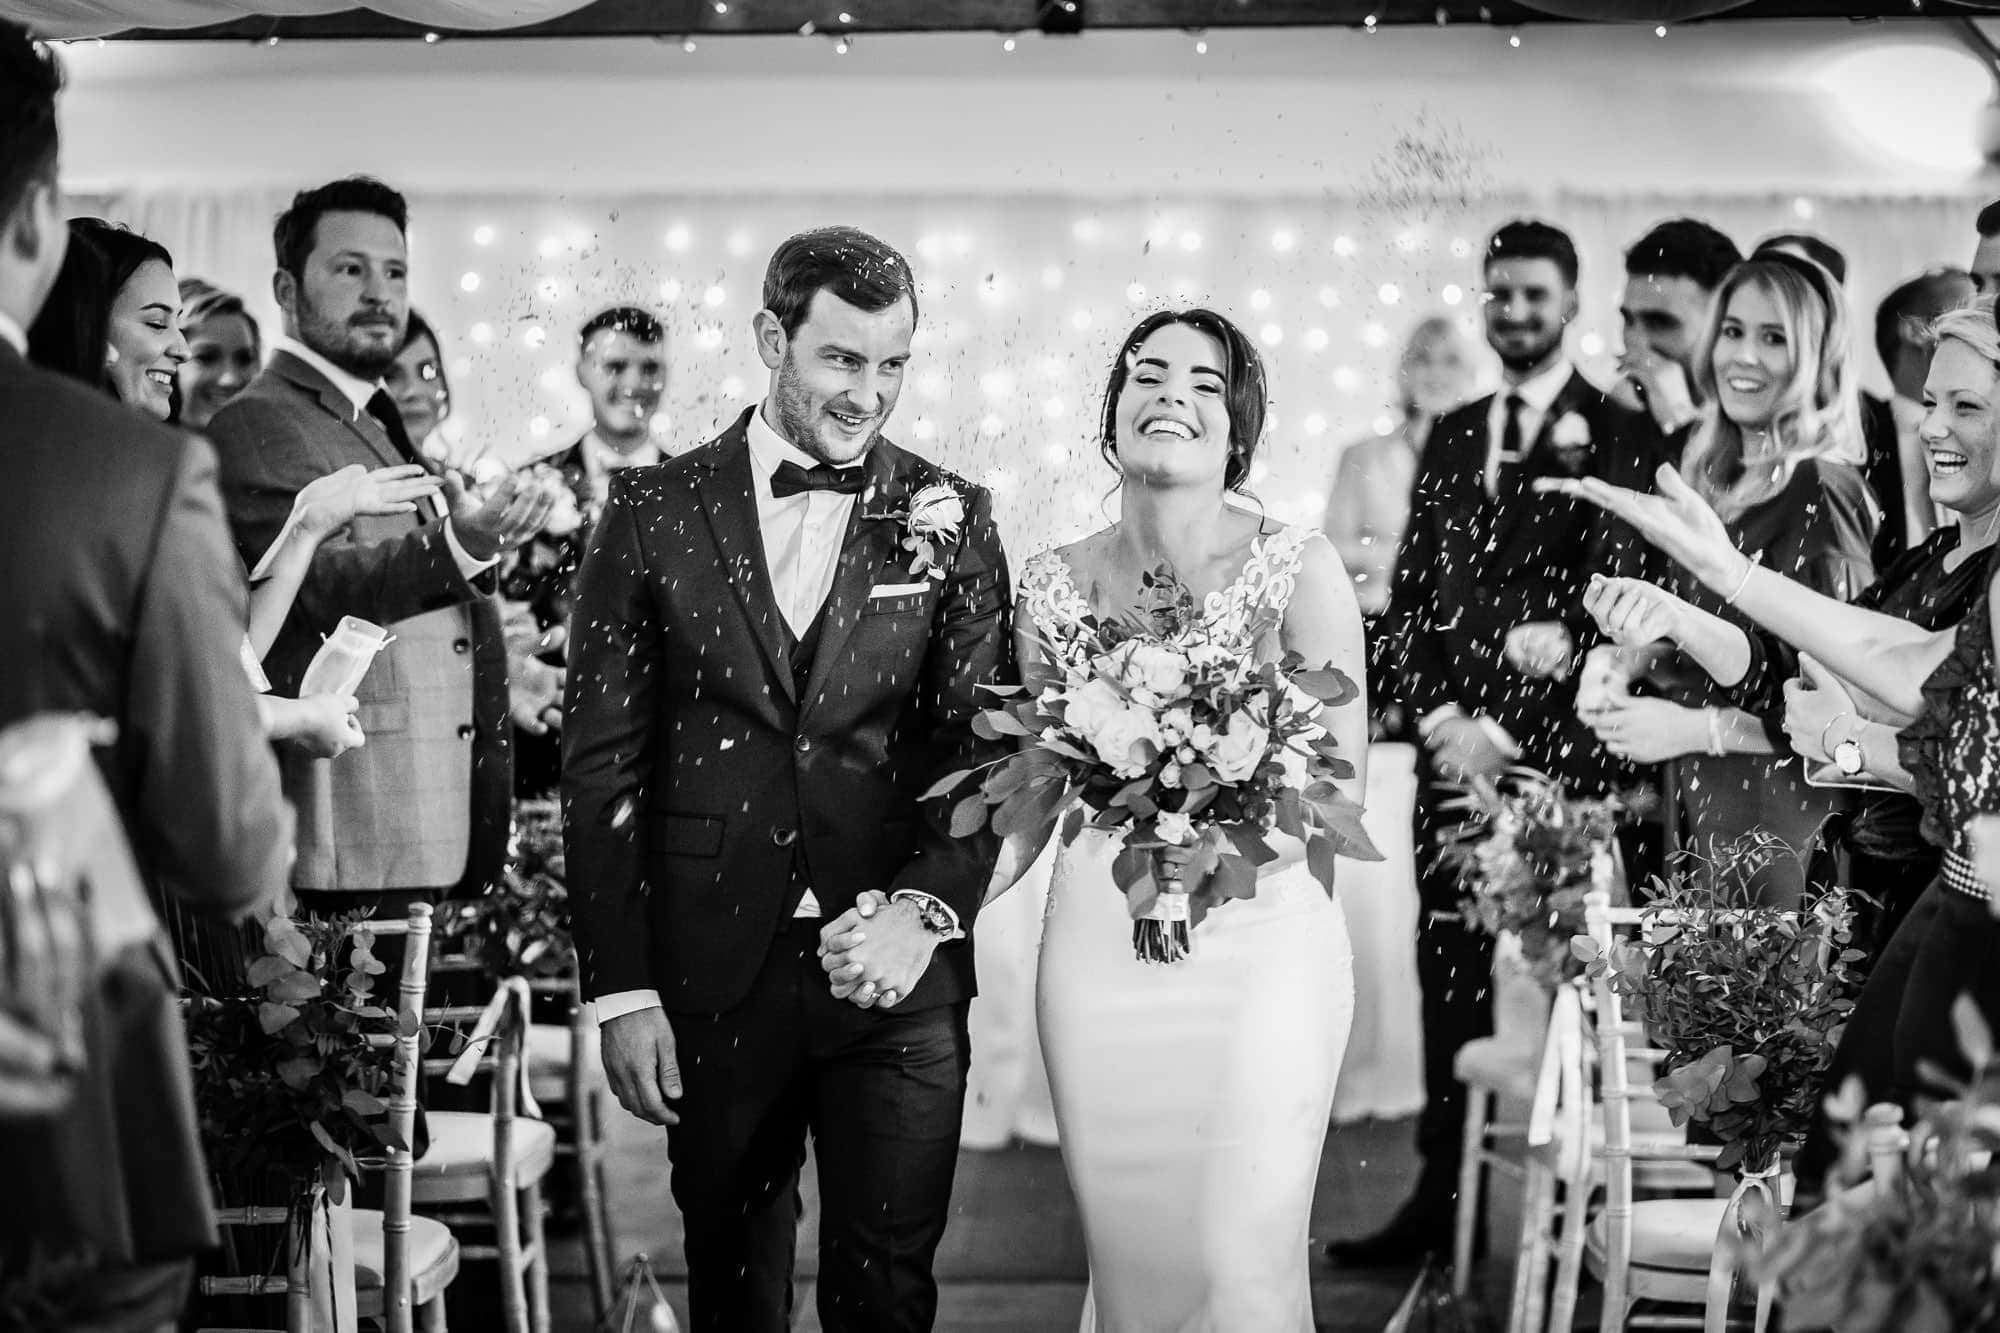 Farbridge Wedding Photo - Wedding Ceremony - Confetti as couple walk down the aisle - Farbridge Wedding Photographers